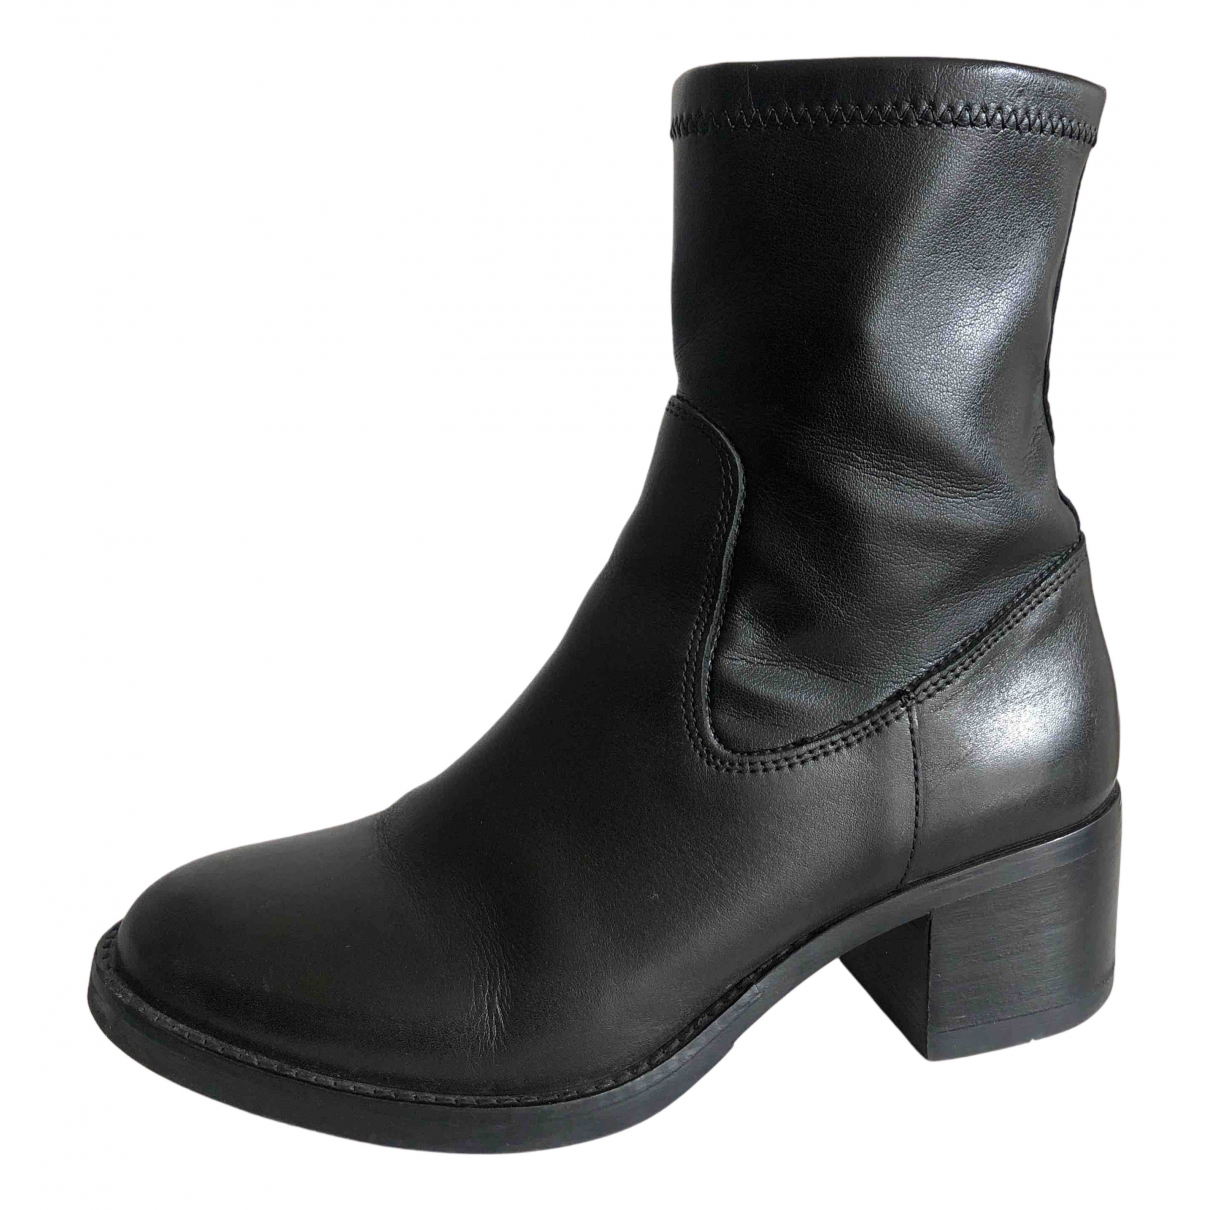 Pollini N Black Leather Boots for Women 35 EU